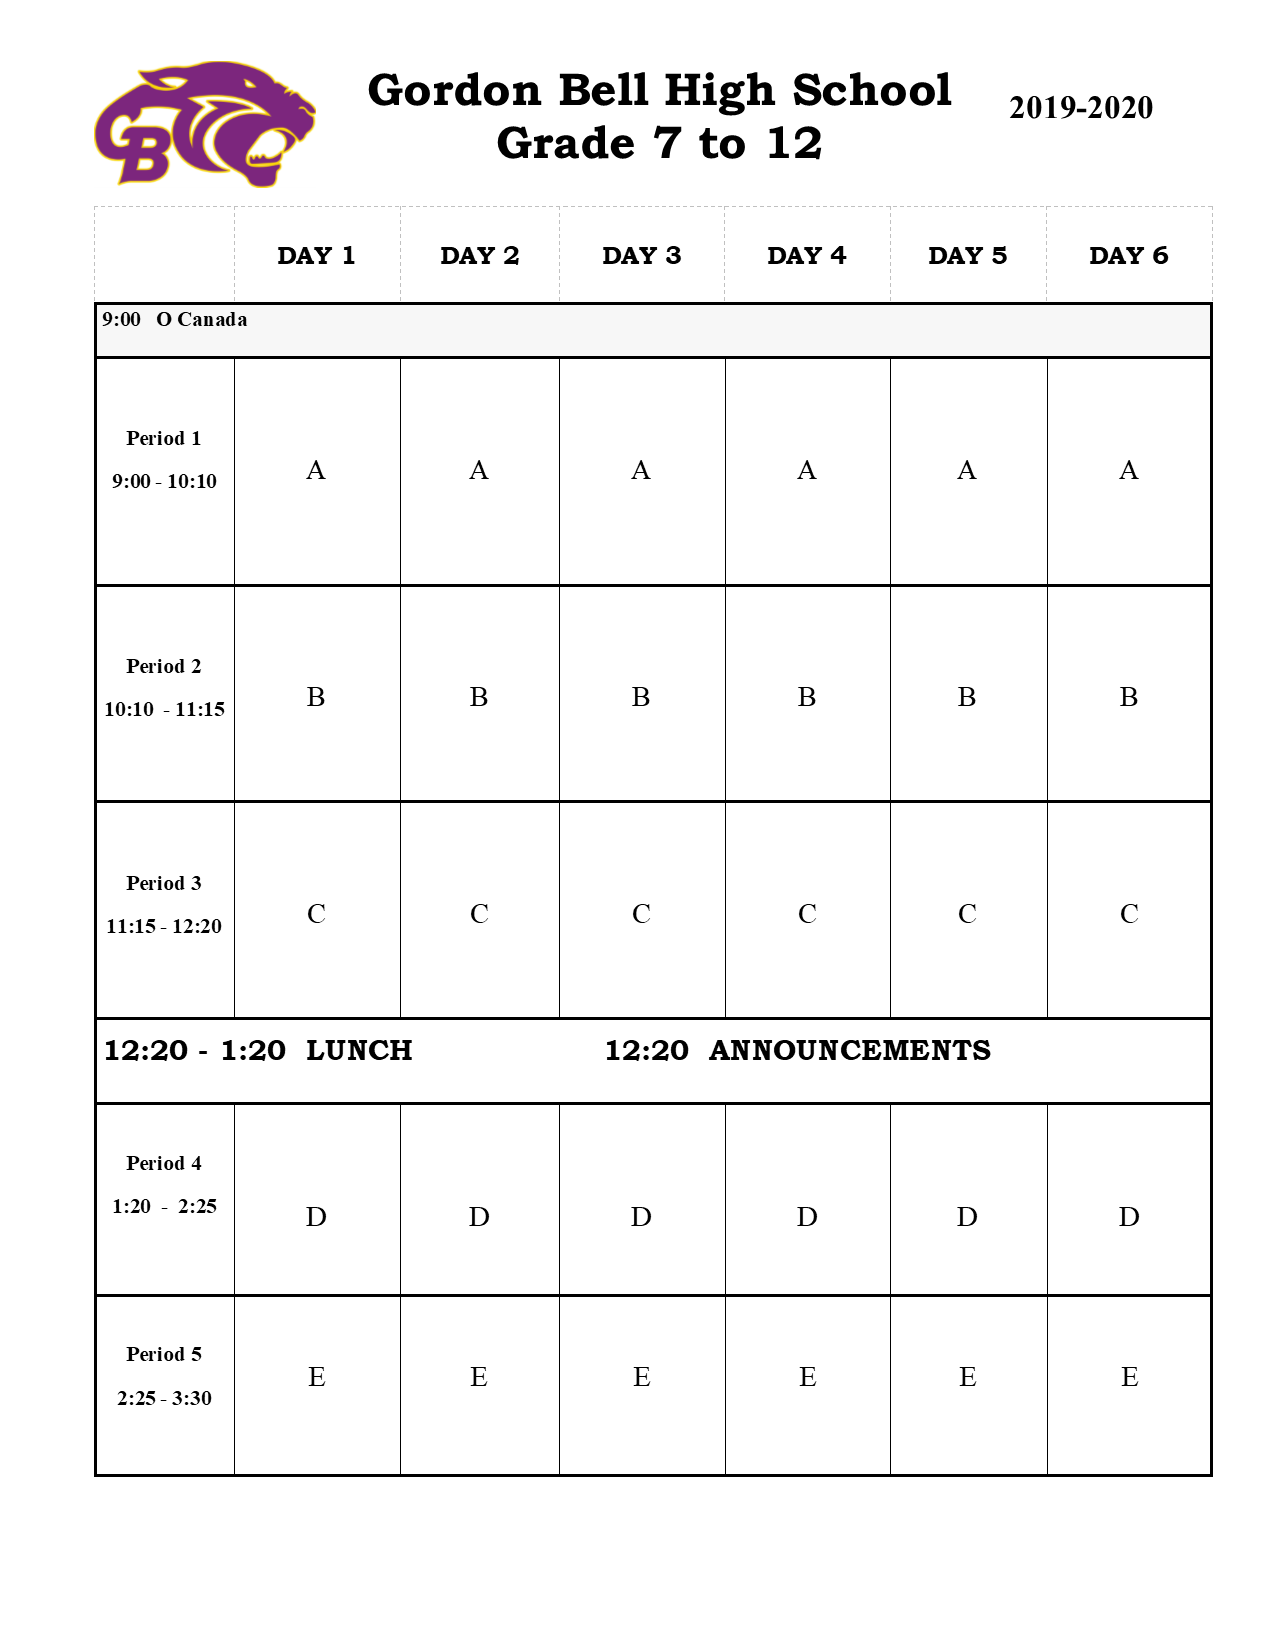 blank-timetable-2019-2020.png